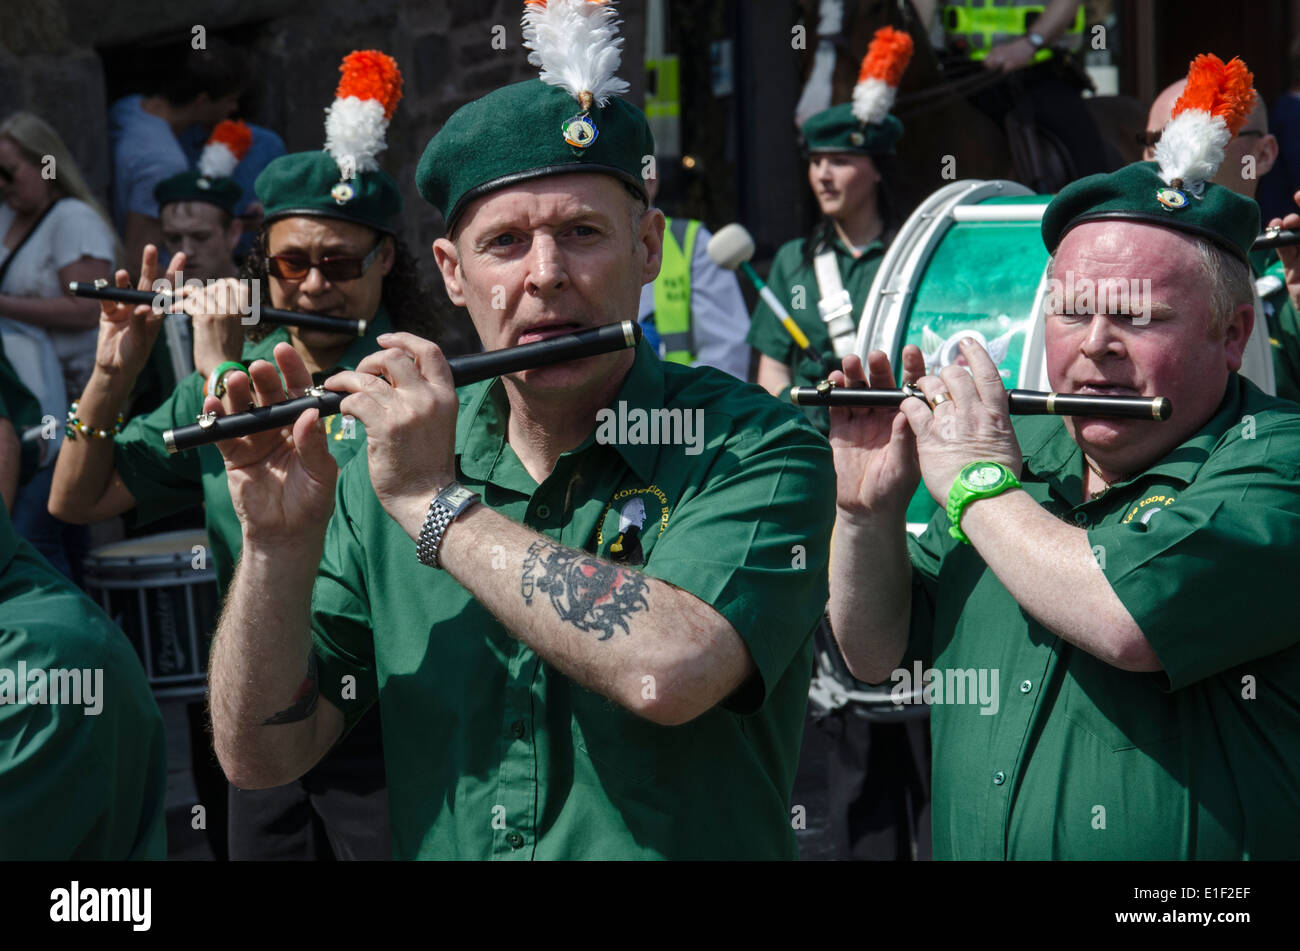 Members of an Irish Republican flute band on the James Connolly Memorial March in Edinburgh, 2014. - Stock Image